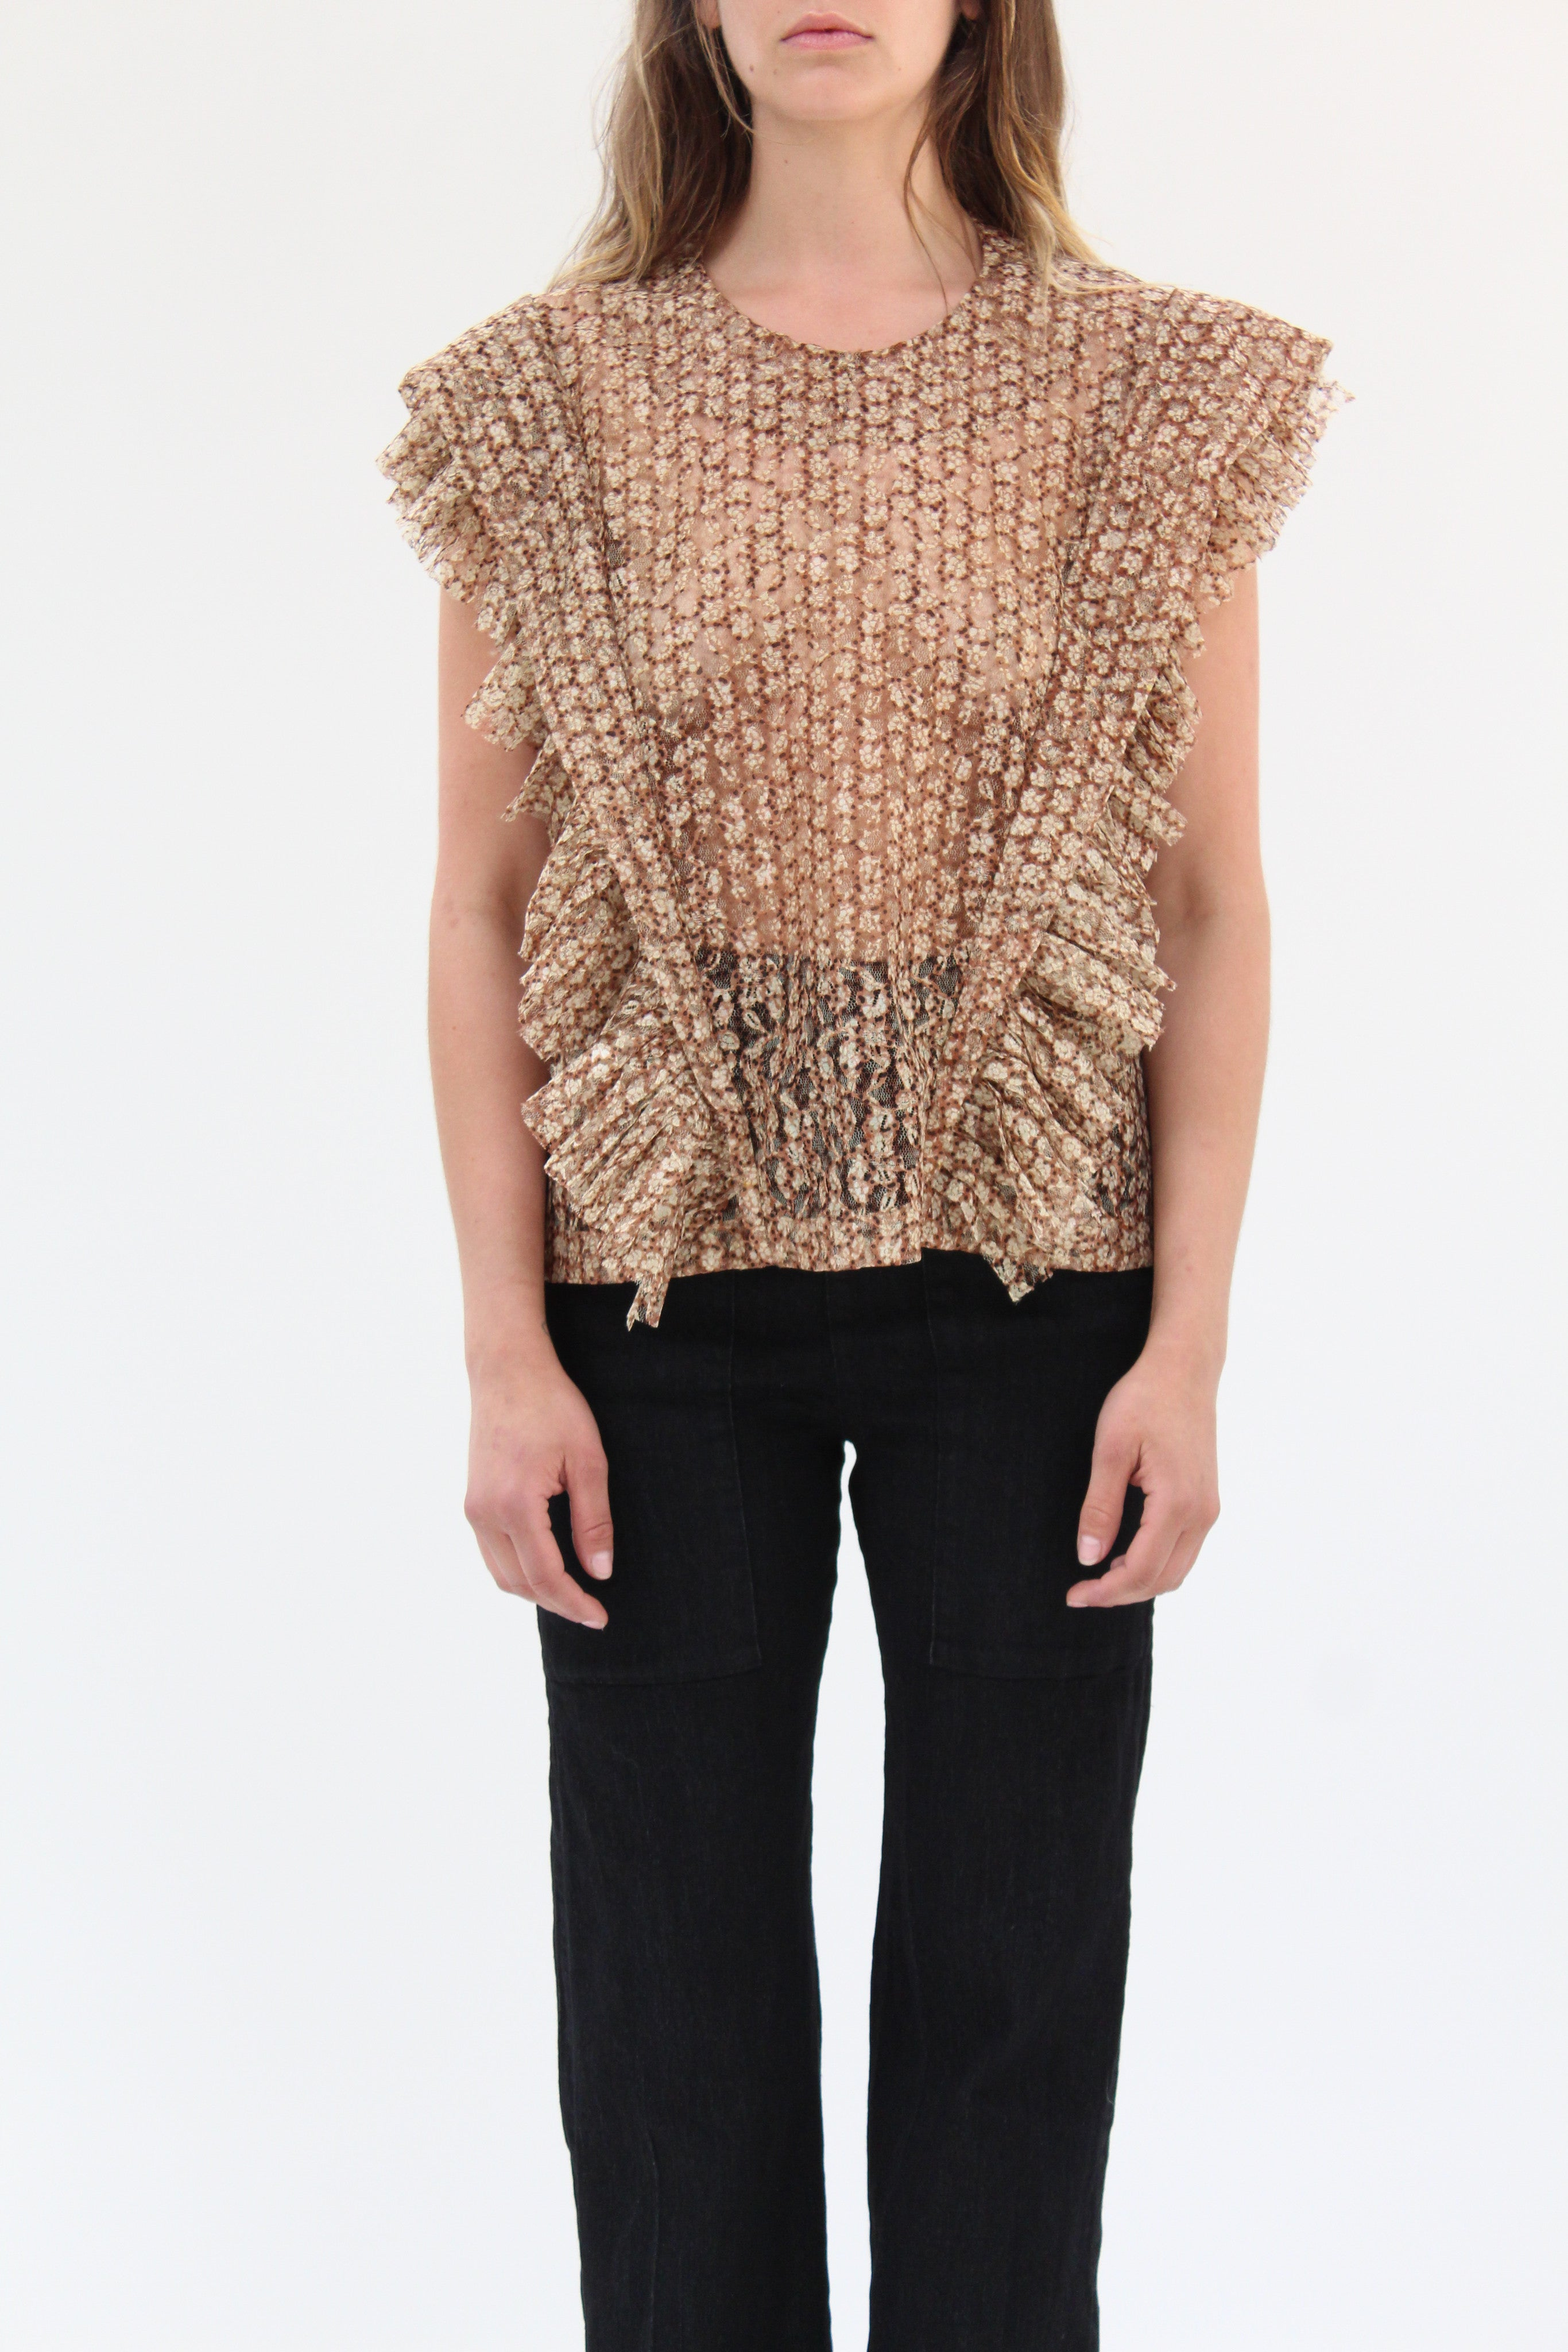 A Détacher Esther Blouse Sienna